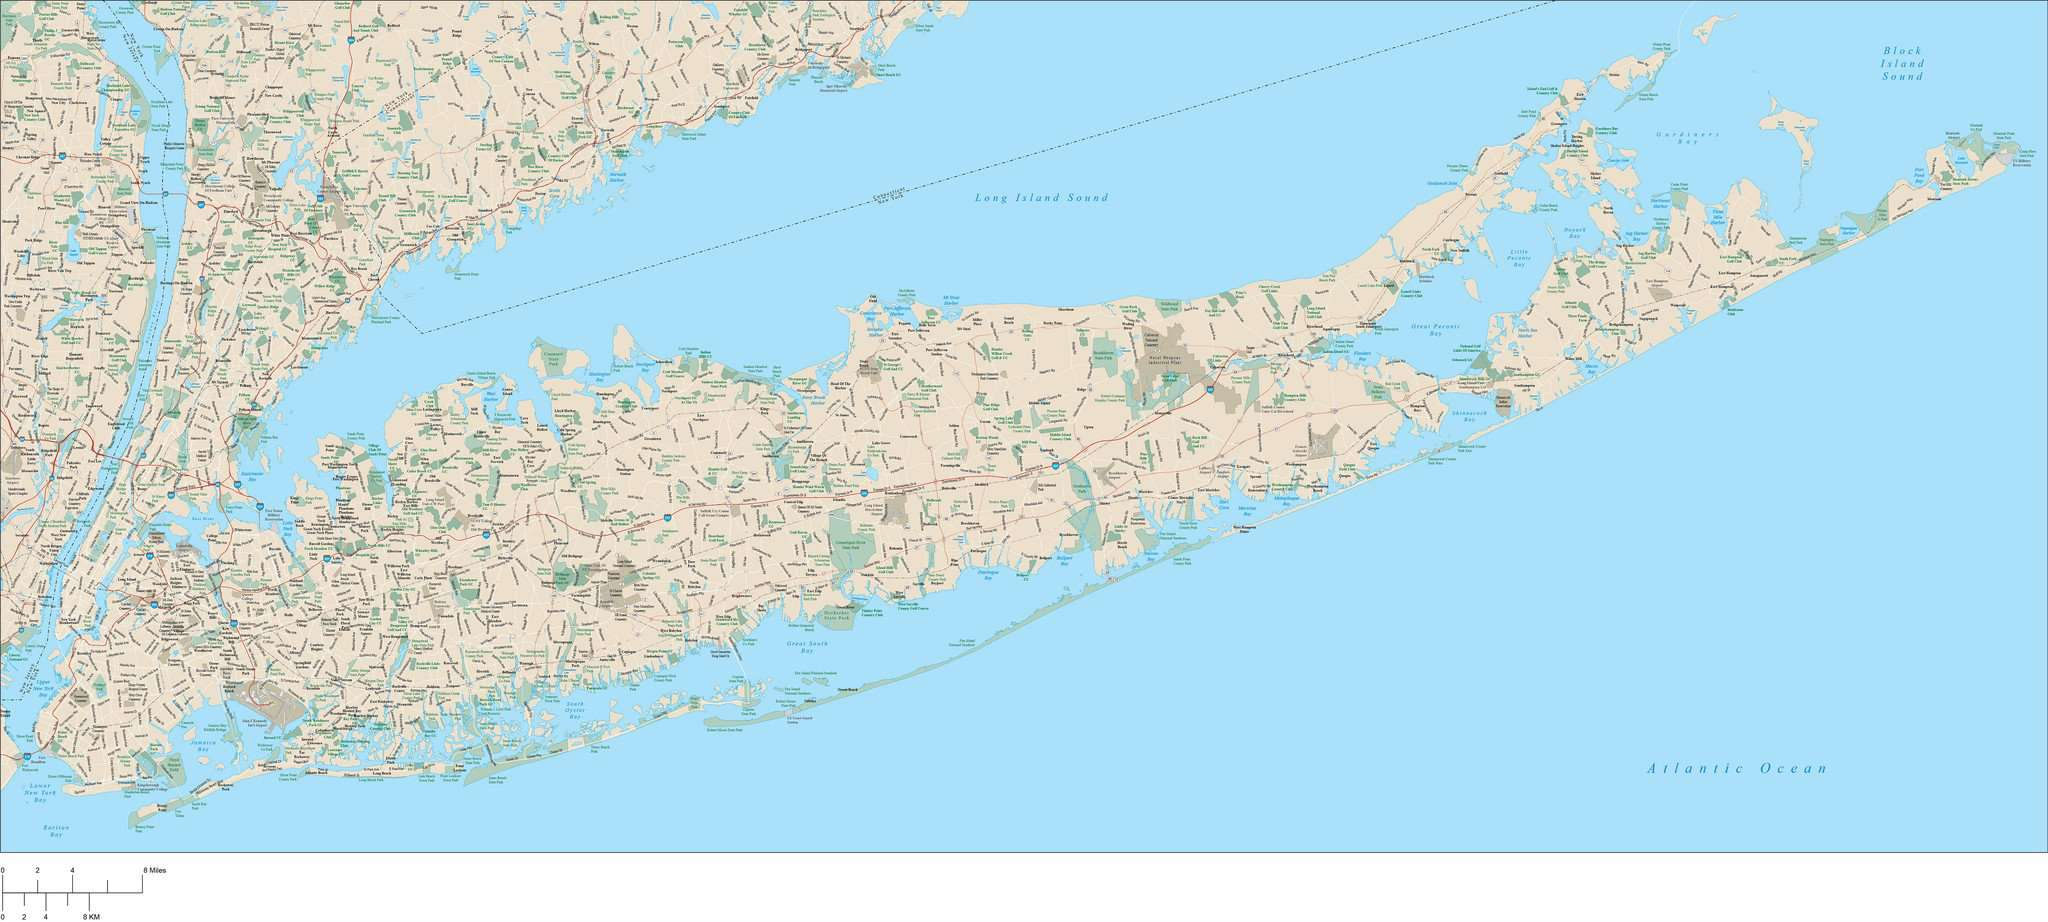 Long Island, NY Map with Major Roads on the bronx, long island map showing towns, suffolk county long island map, long island wantagh, antique long island map, long island herricks, new york map, new york city, nassau county, long island rail map, long island lirr map, washington dc map, long island buffalo, nassau county long island map, new york metropolitan area, suffolk county, long island new york, staten island, long island map view, long island sound, coney island, long island town names, long island bronx map, long island railroad map, long island connecticut map, times square, battle of long island, long beach, long island potato fields, long island boston map, ellis island, north shore long island map, hudson river, brooklyn bridge,